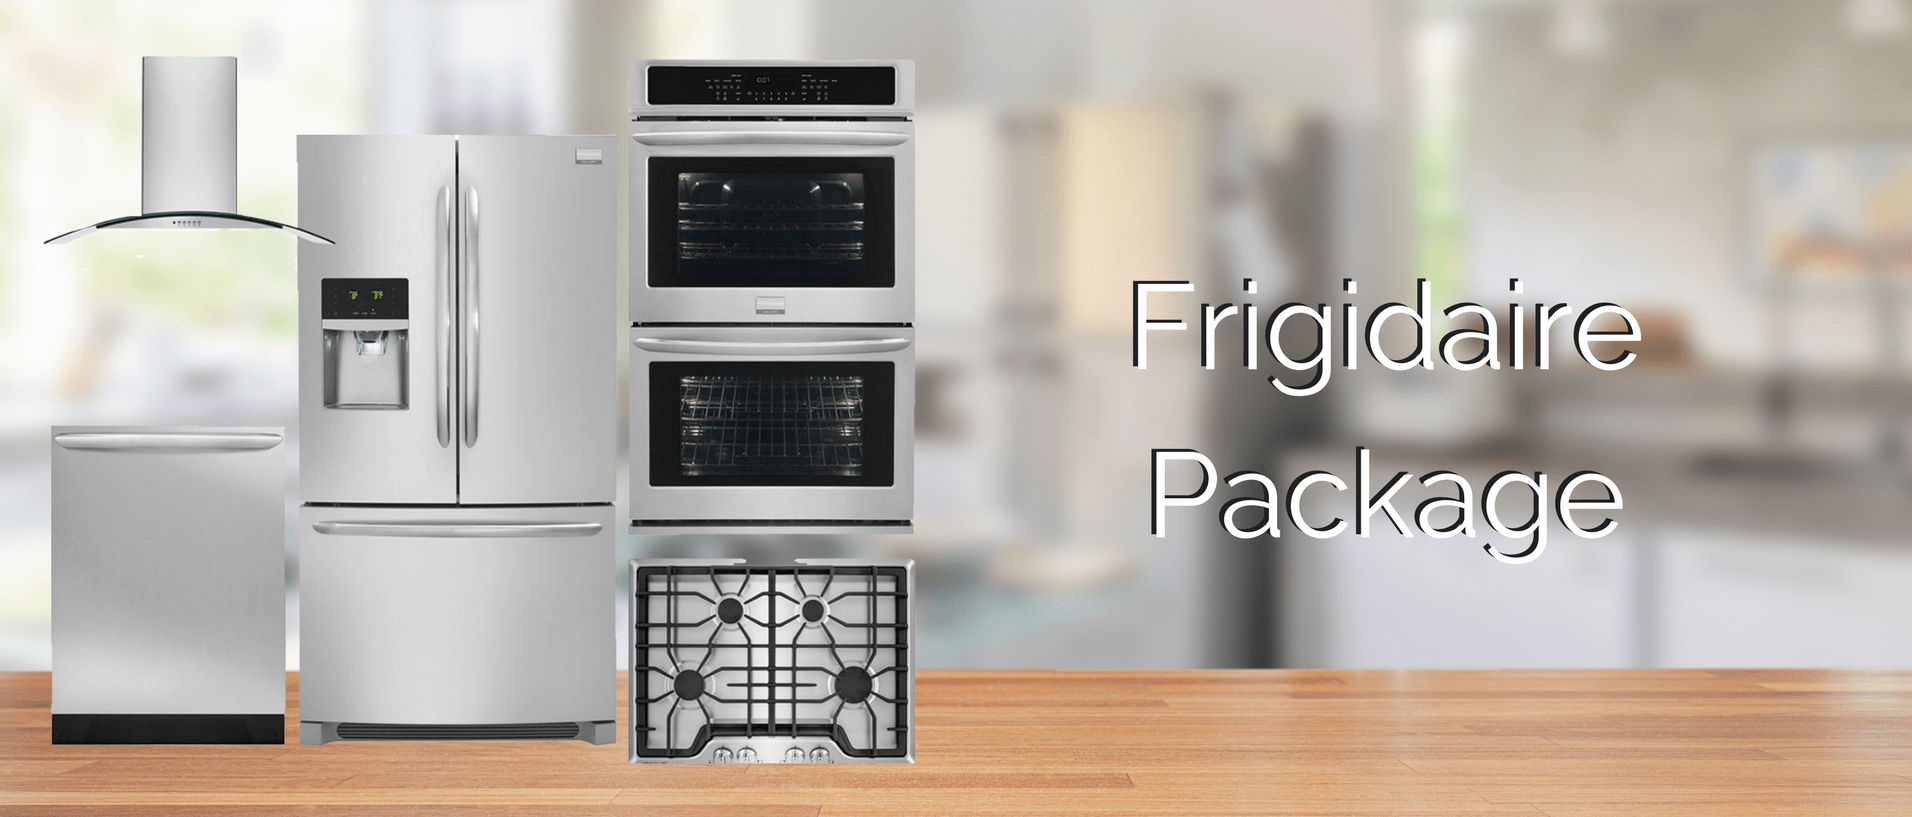 frigidaire kitchen package windsor chairs the best appliances packages of 2018 connection is a leading brand that offers full range energy efficient high quality and laundry they are highly known for their